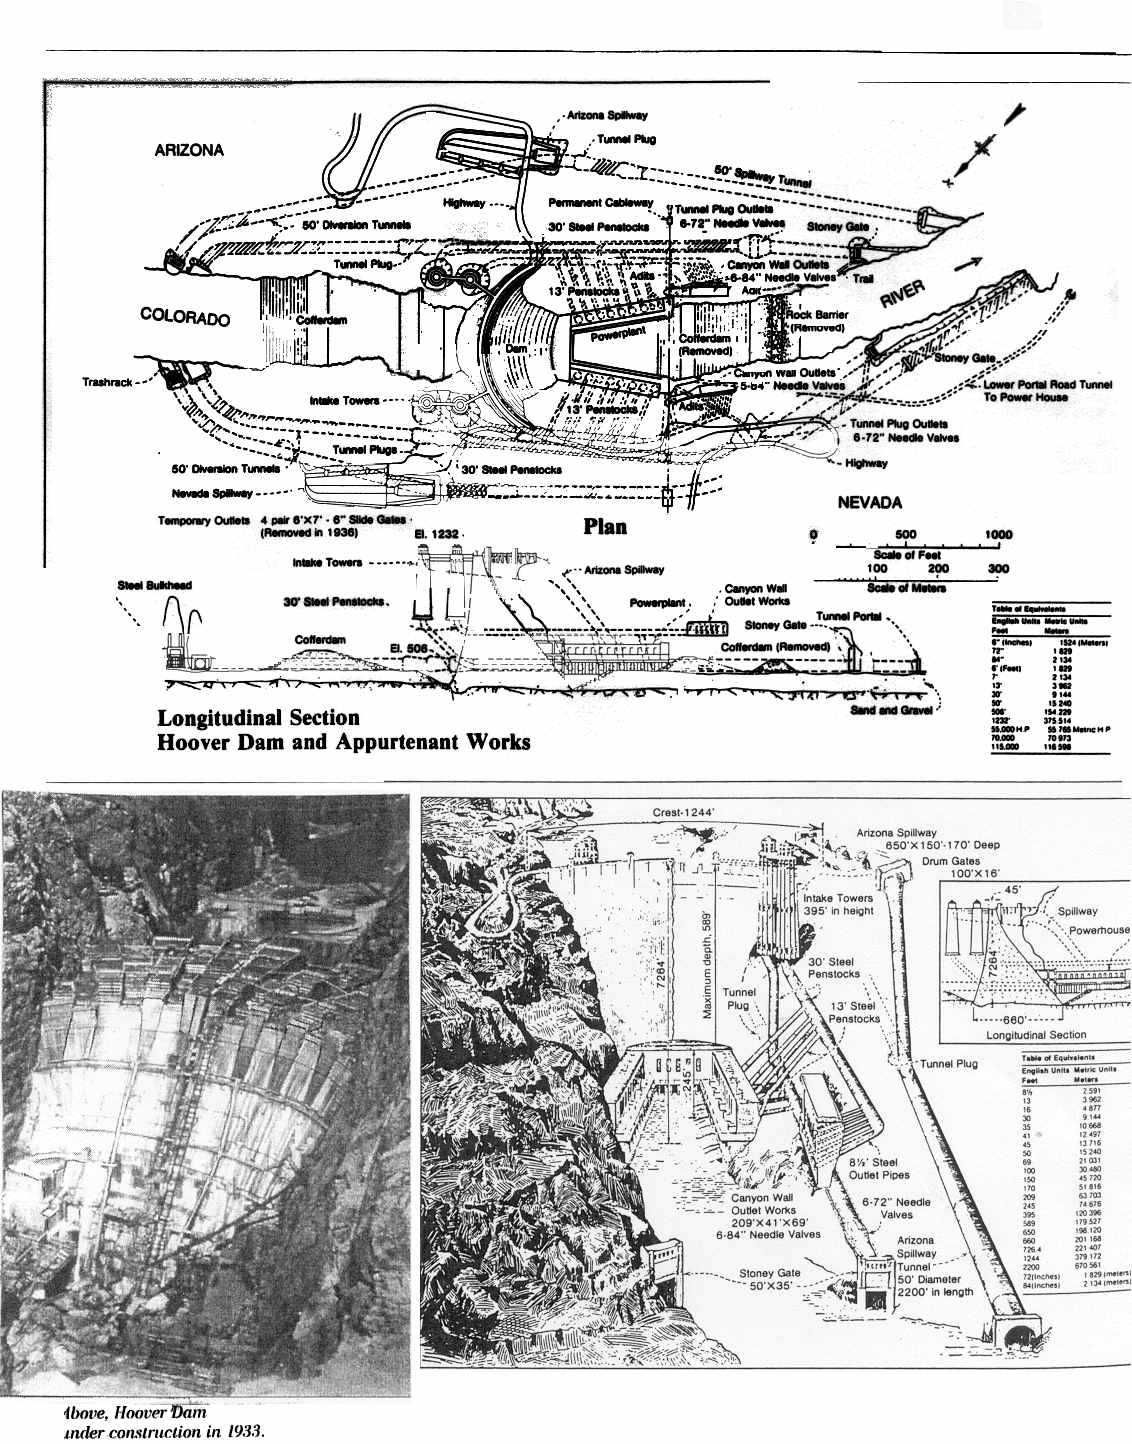 hoover dam from space - Google Search Colorado River, Diagram, Lake Mead,  Google